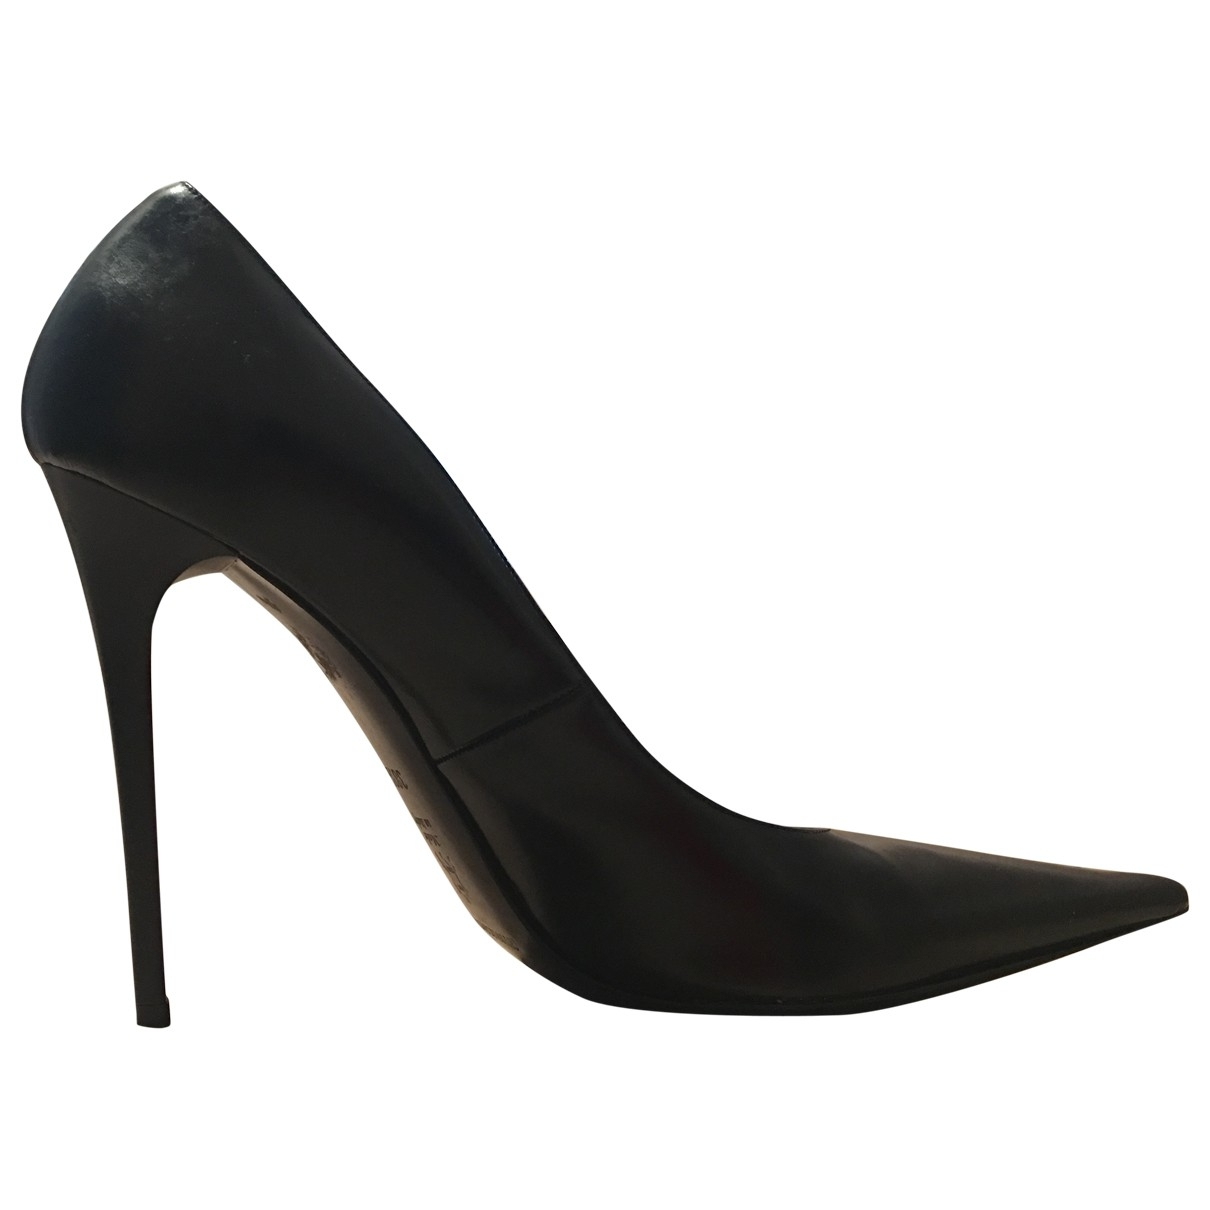 Gianmarco Lorenzi \N Black Leather Heels for Women 38.5 EU